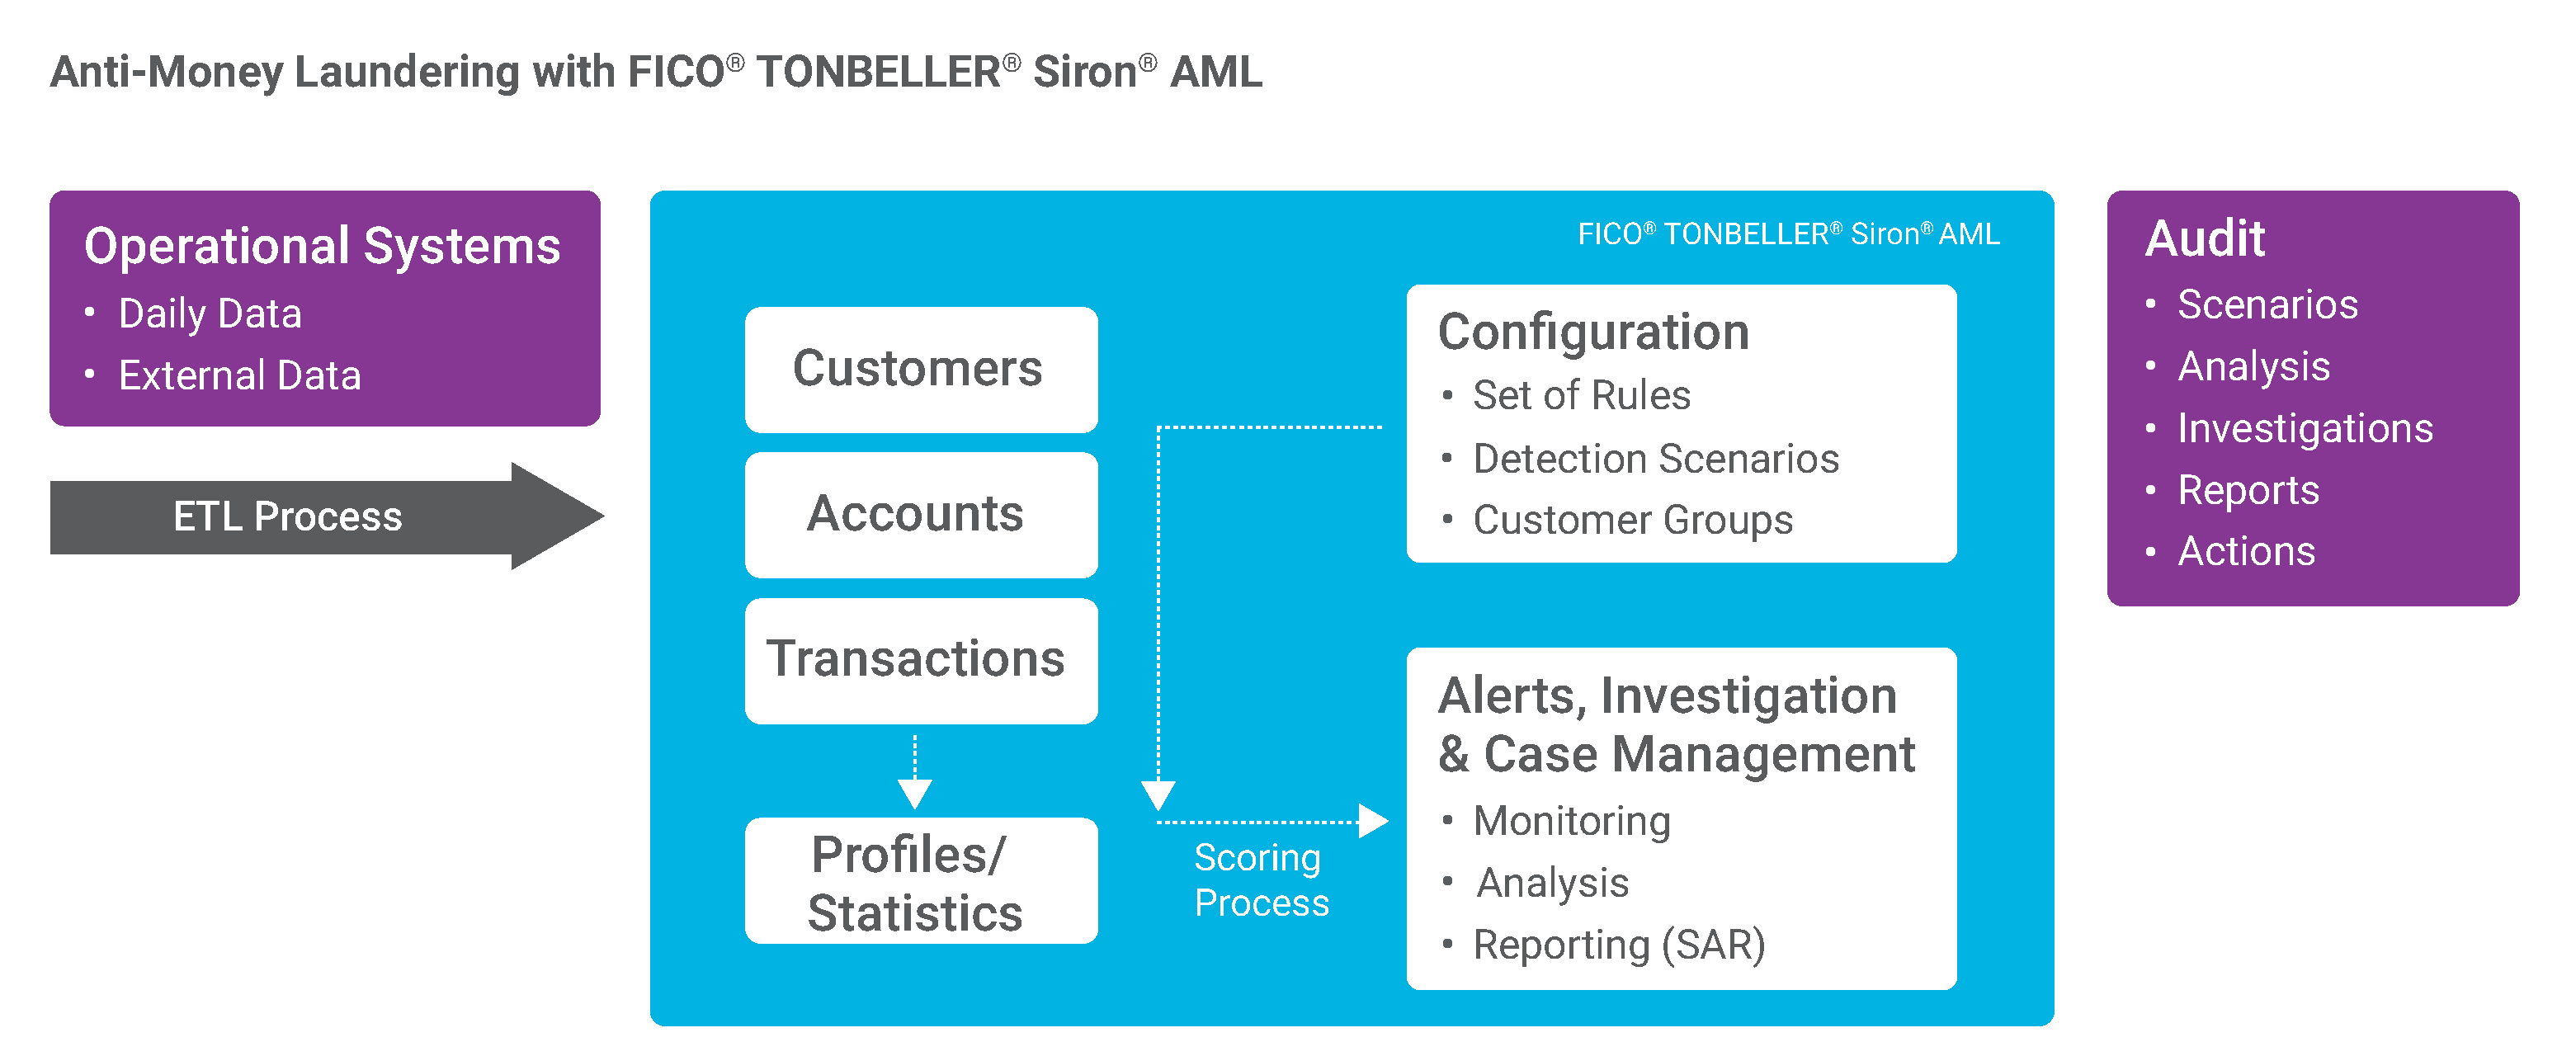 Anti-Money Laundering (AML) & Transaction Monitoring Workflow with Siron